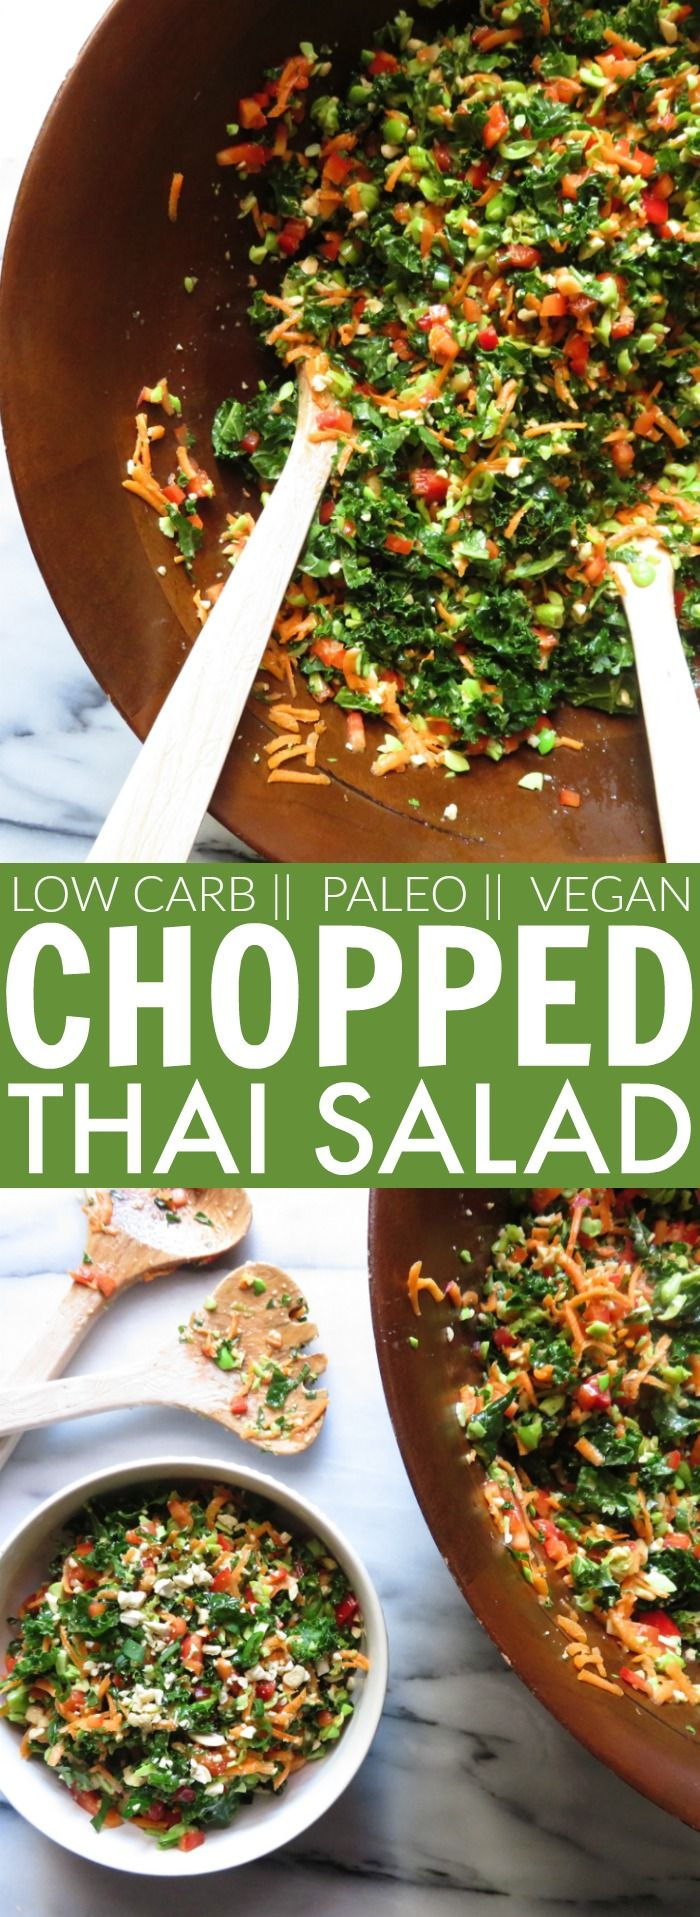 LOVE the flavors of this low carb, gluten free + paleo Chopped Thai Salad!! So healthy and packed with goodies! The leftovers are even MORE amazing! thetoastedpinenut.com #glutenfree #paleo #lowcarb #salad